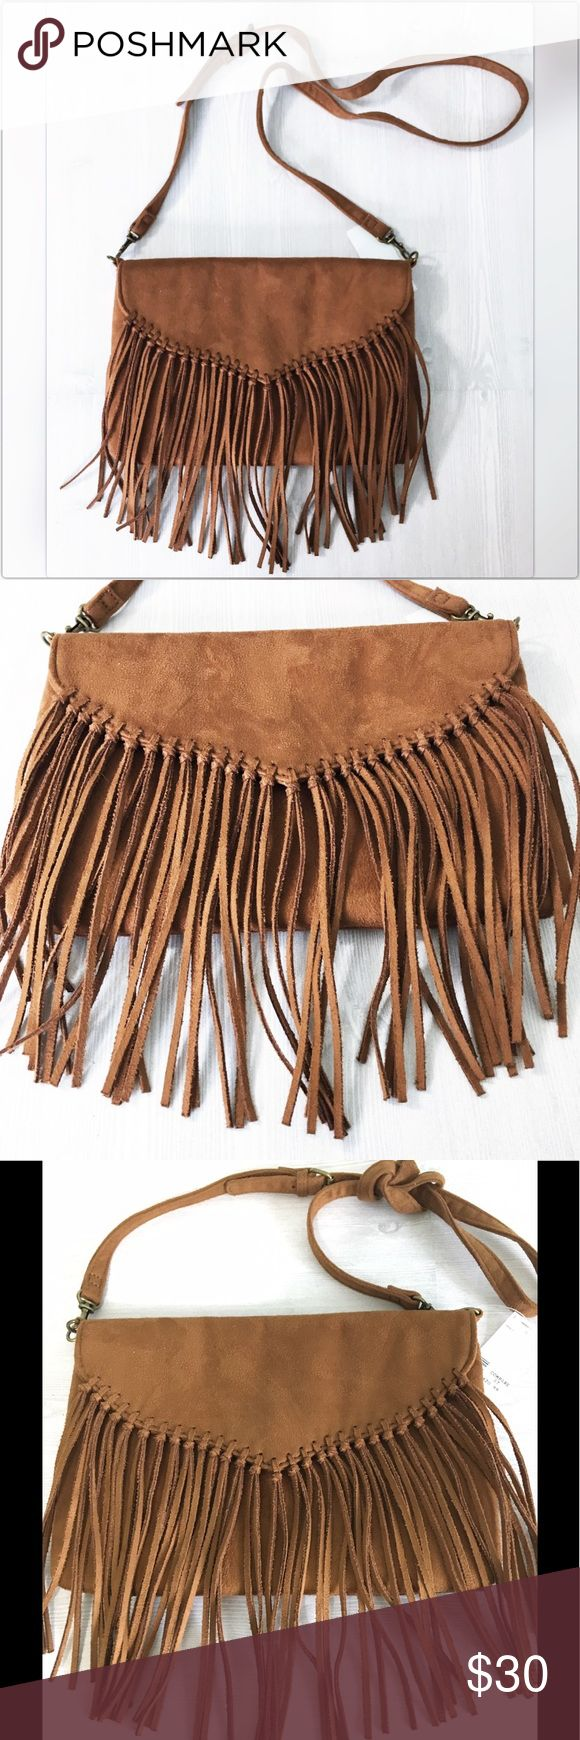 """Hobo Express Fringe Faux Suede CrossBody Bag NWT Hobo Chic!  CrossBody Fringe Faux Suede bag.  Adjustable strap is 20.5"""" at longest length.  Bag measures 10.5 x 7 inches.  Fringe measures approximately 6.5"""".  Brand New with Tags! Express Bags Crossbody Bags"""